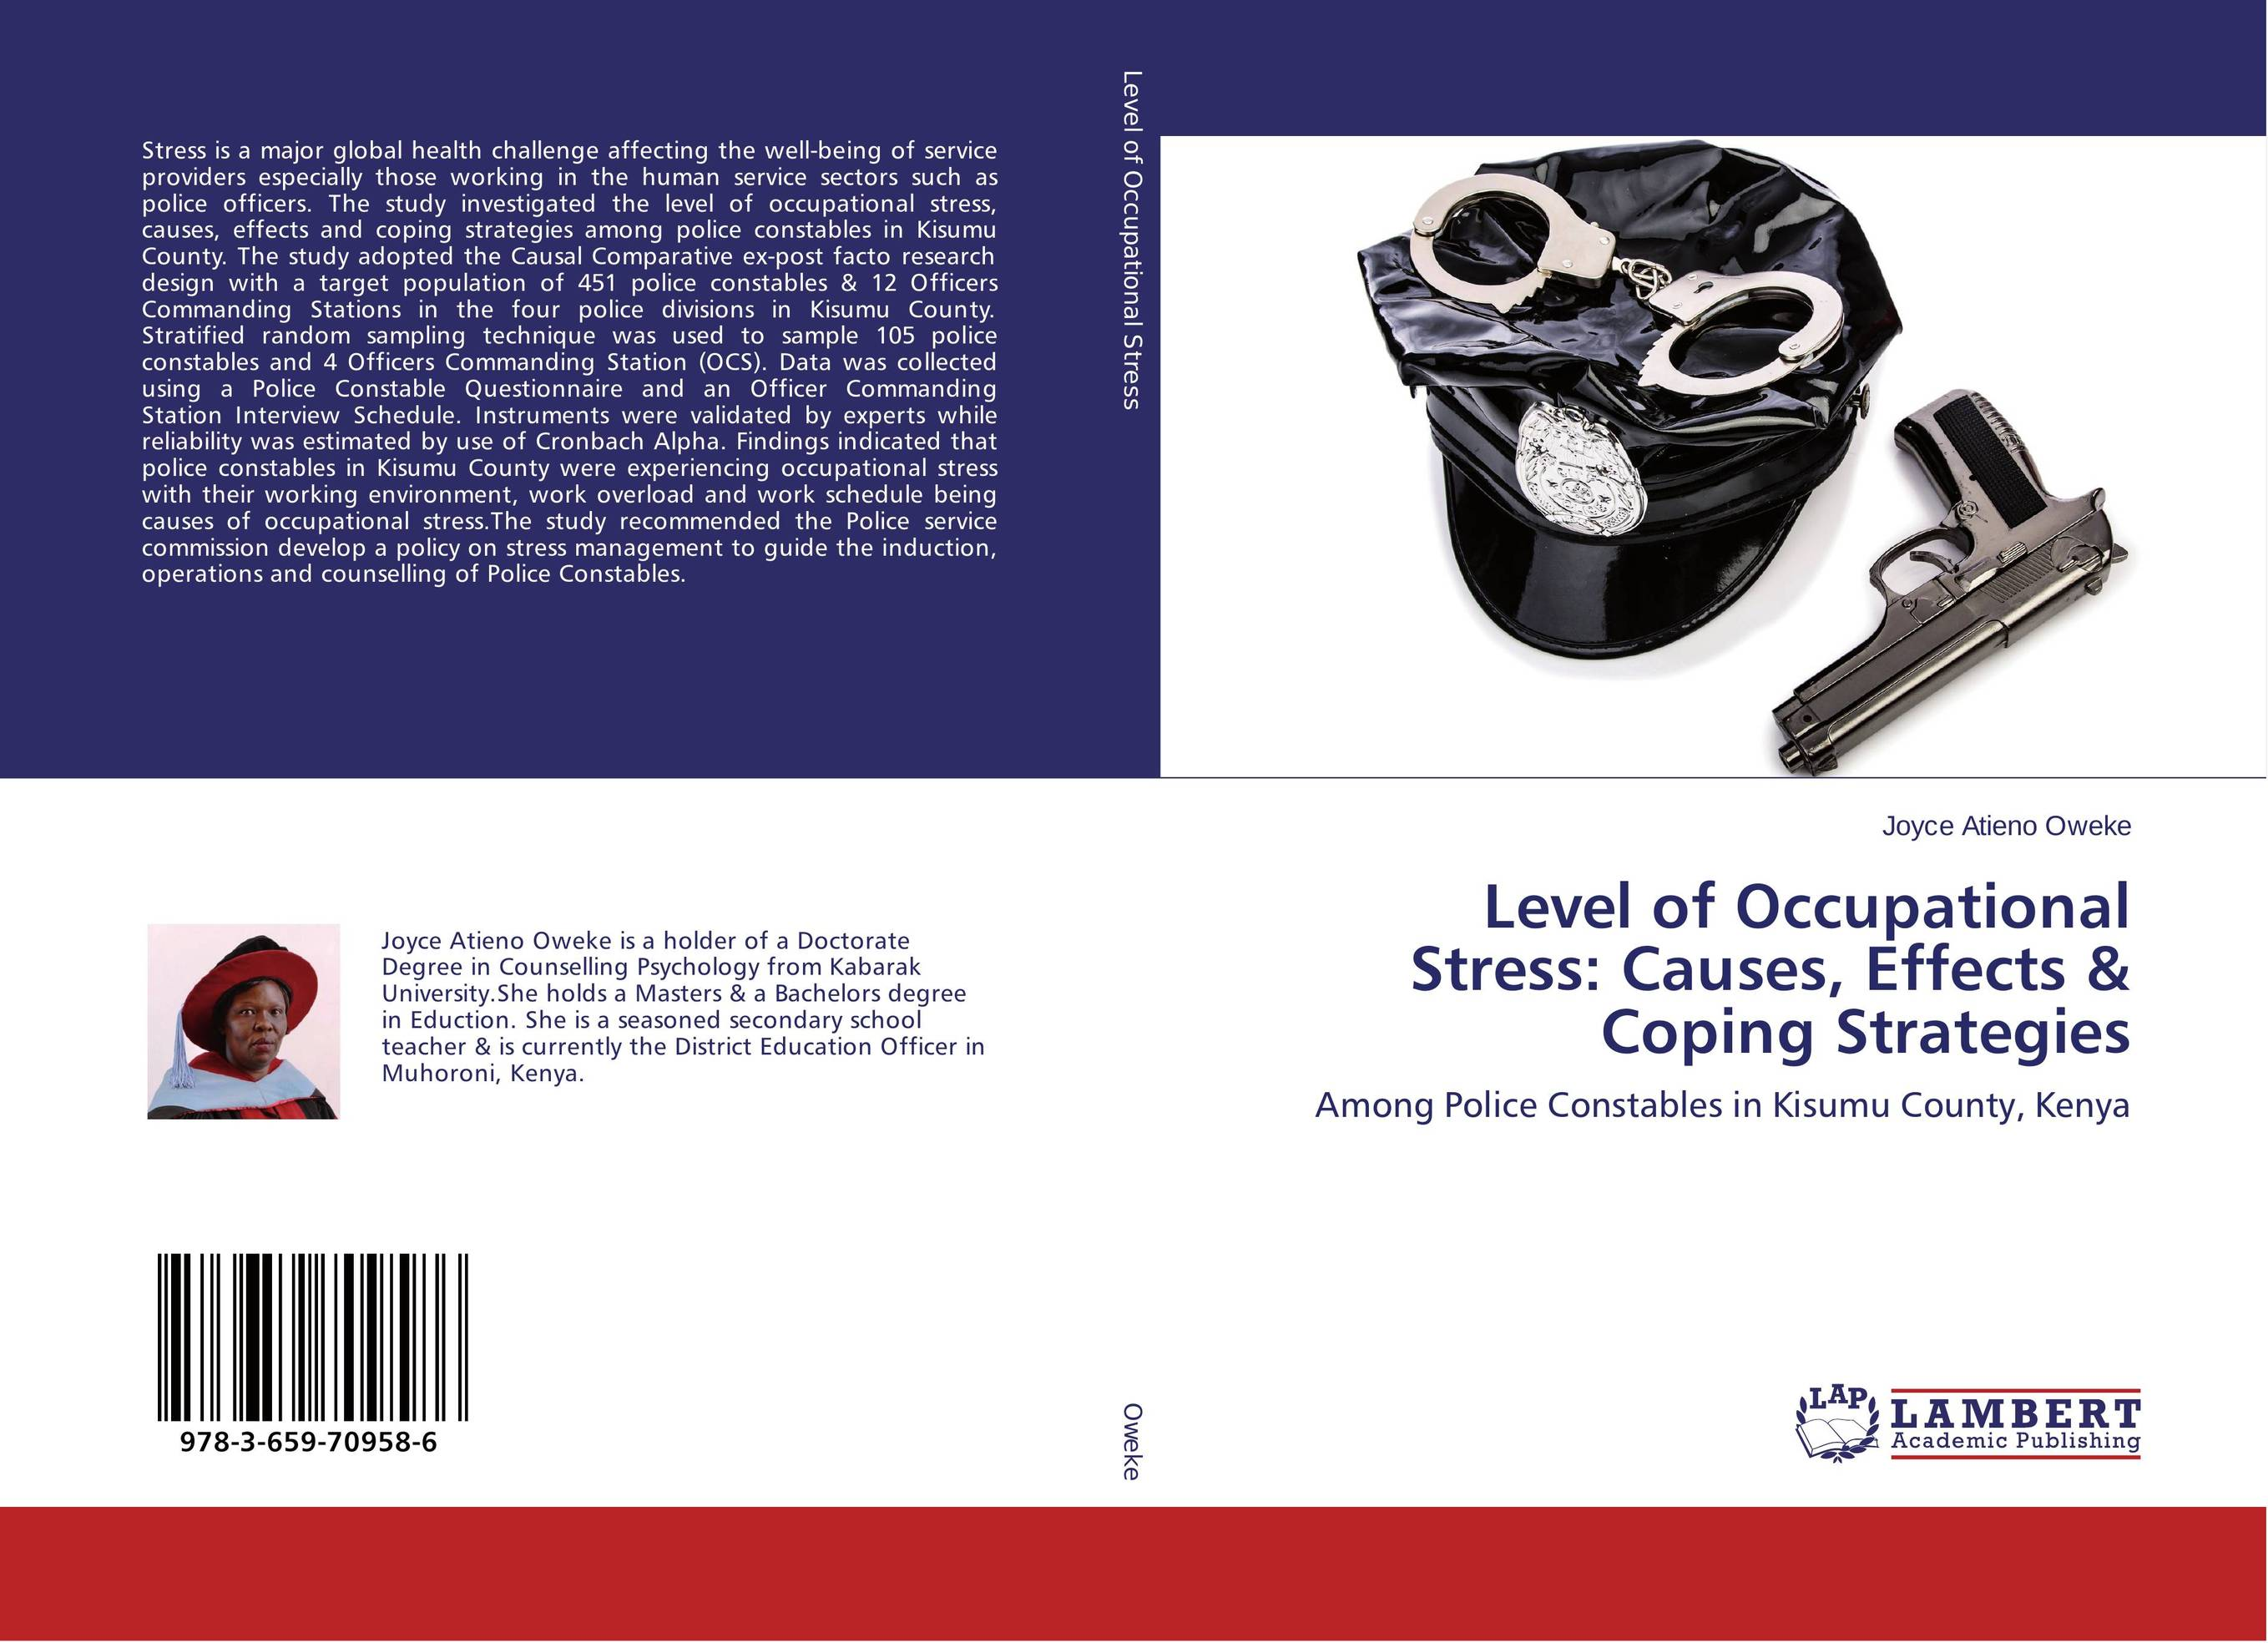 Level of Occupational Stress: Causes, Effects & Coping Strategies